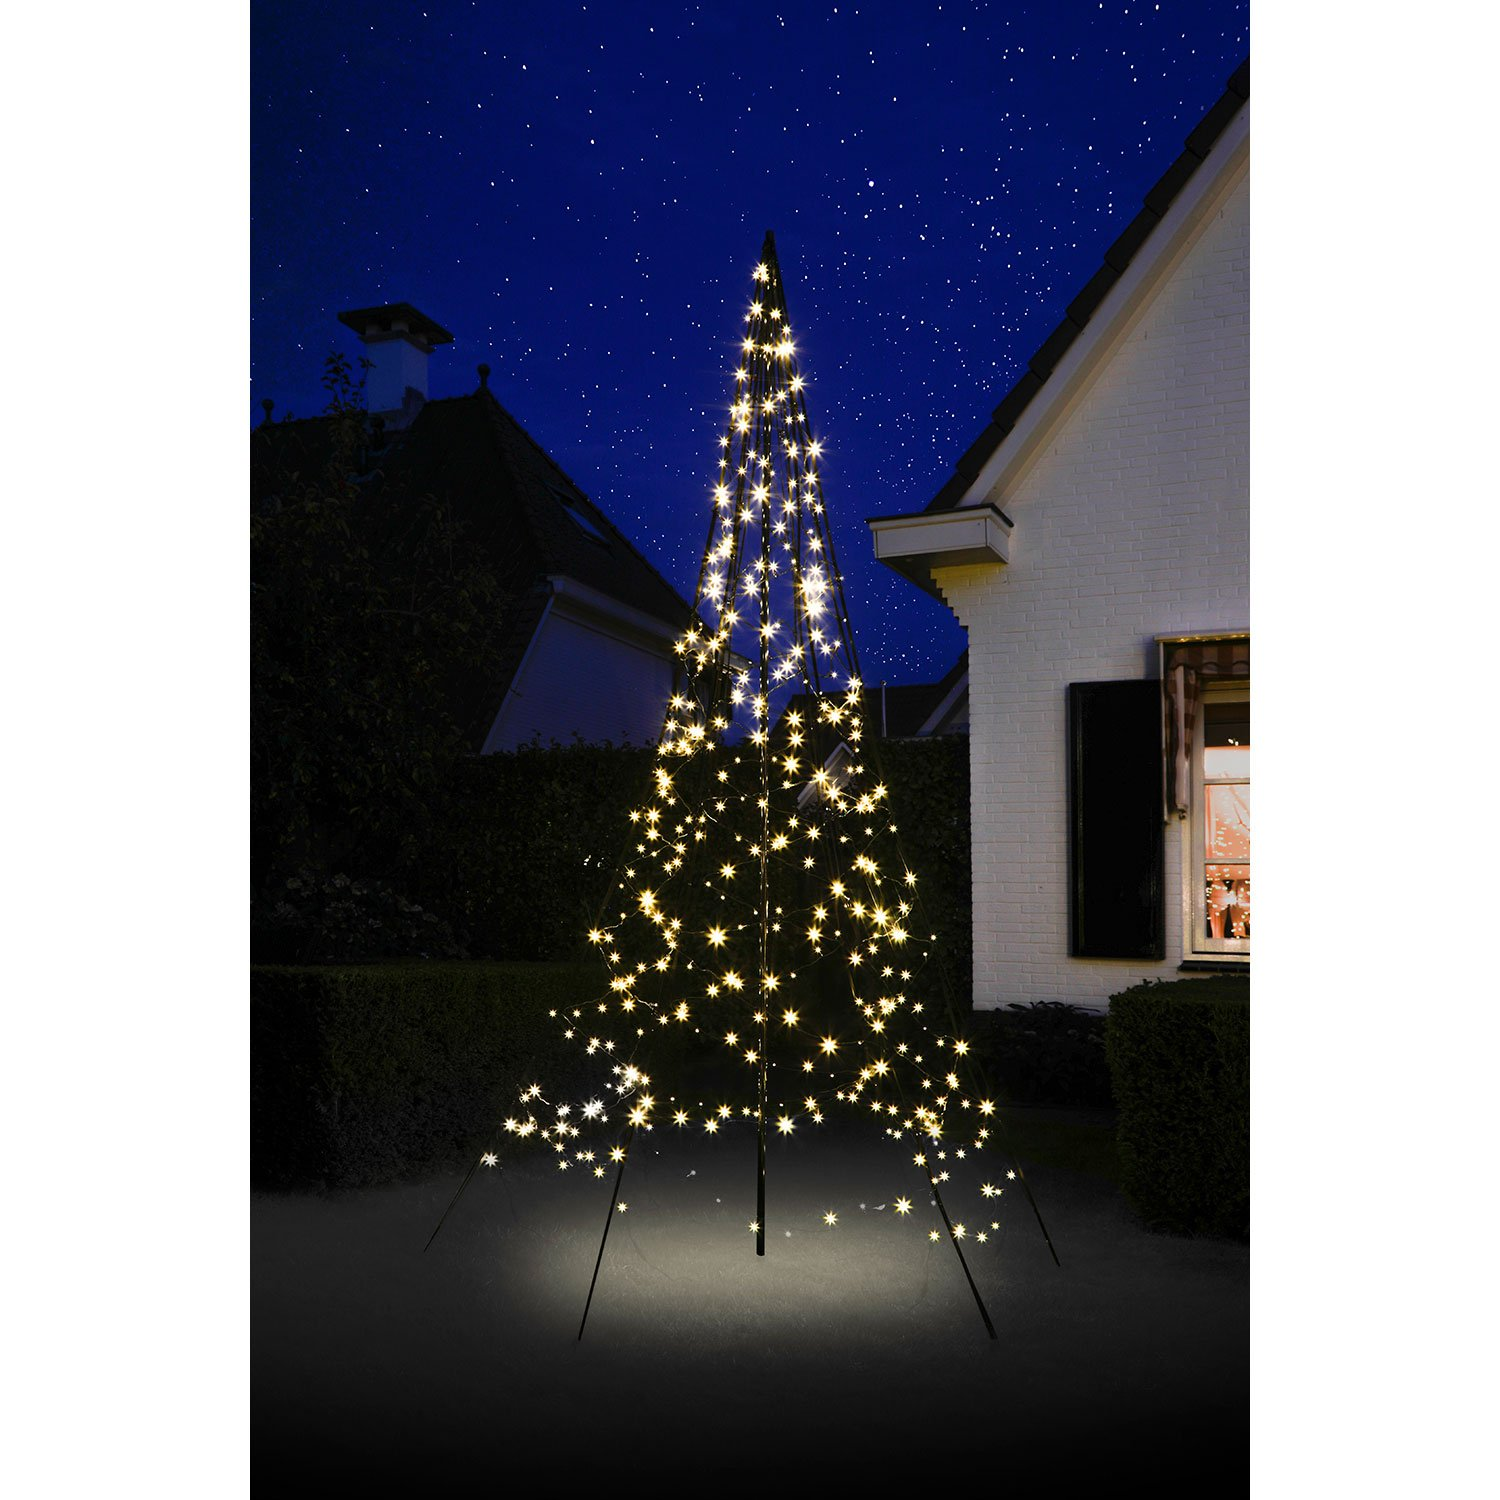 Outdoor Led Christmas Lights.Details About 10 Ft Outdoor Lighted Christmas Tree 360 Led String Light Yard Decor Multi